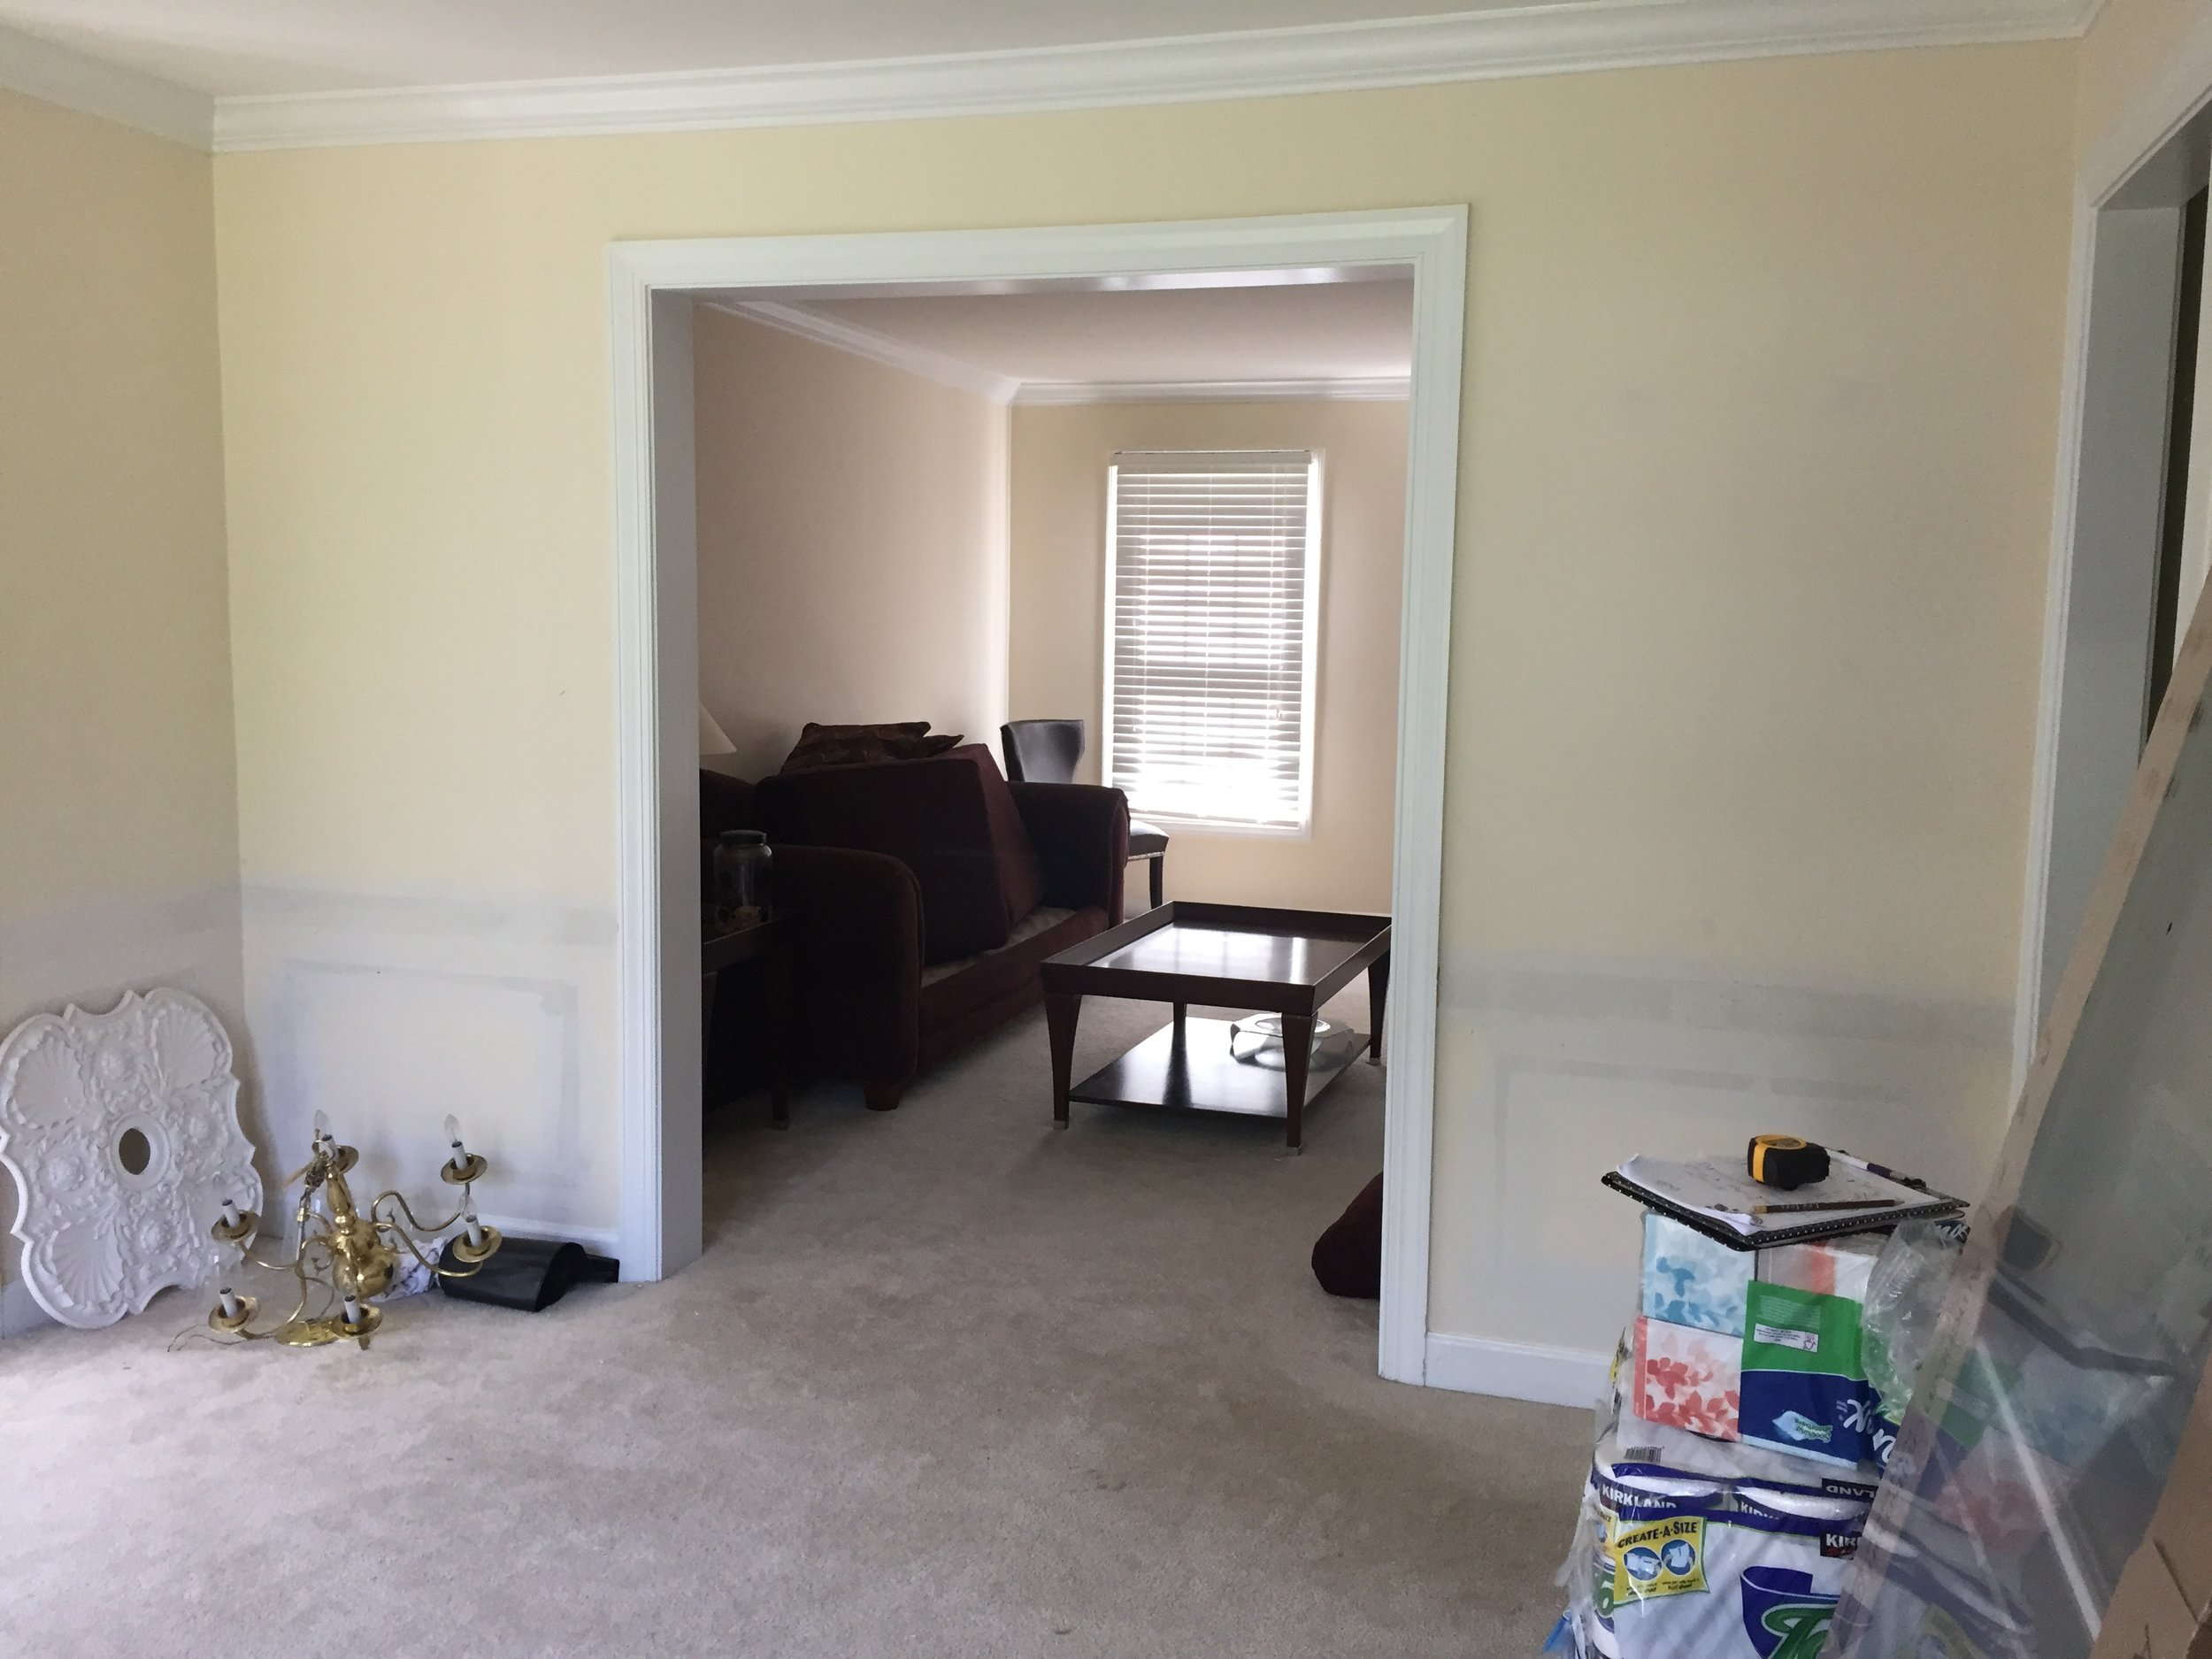 {BEFORE, Dining room looking into living room}